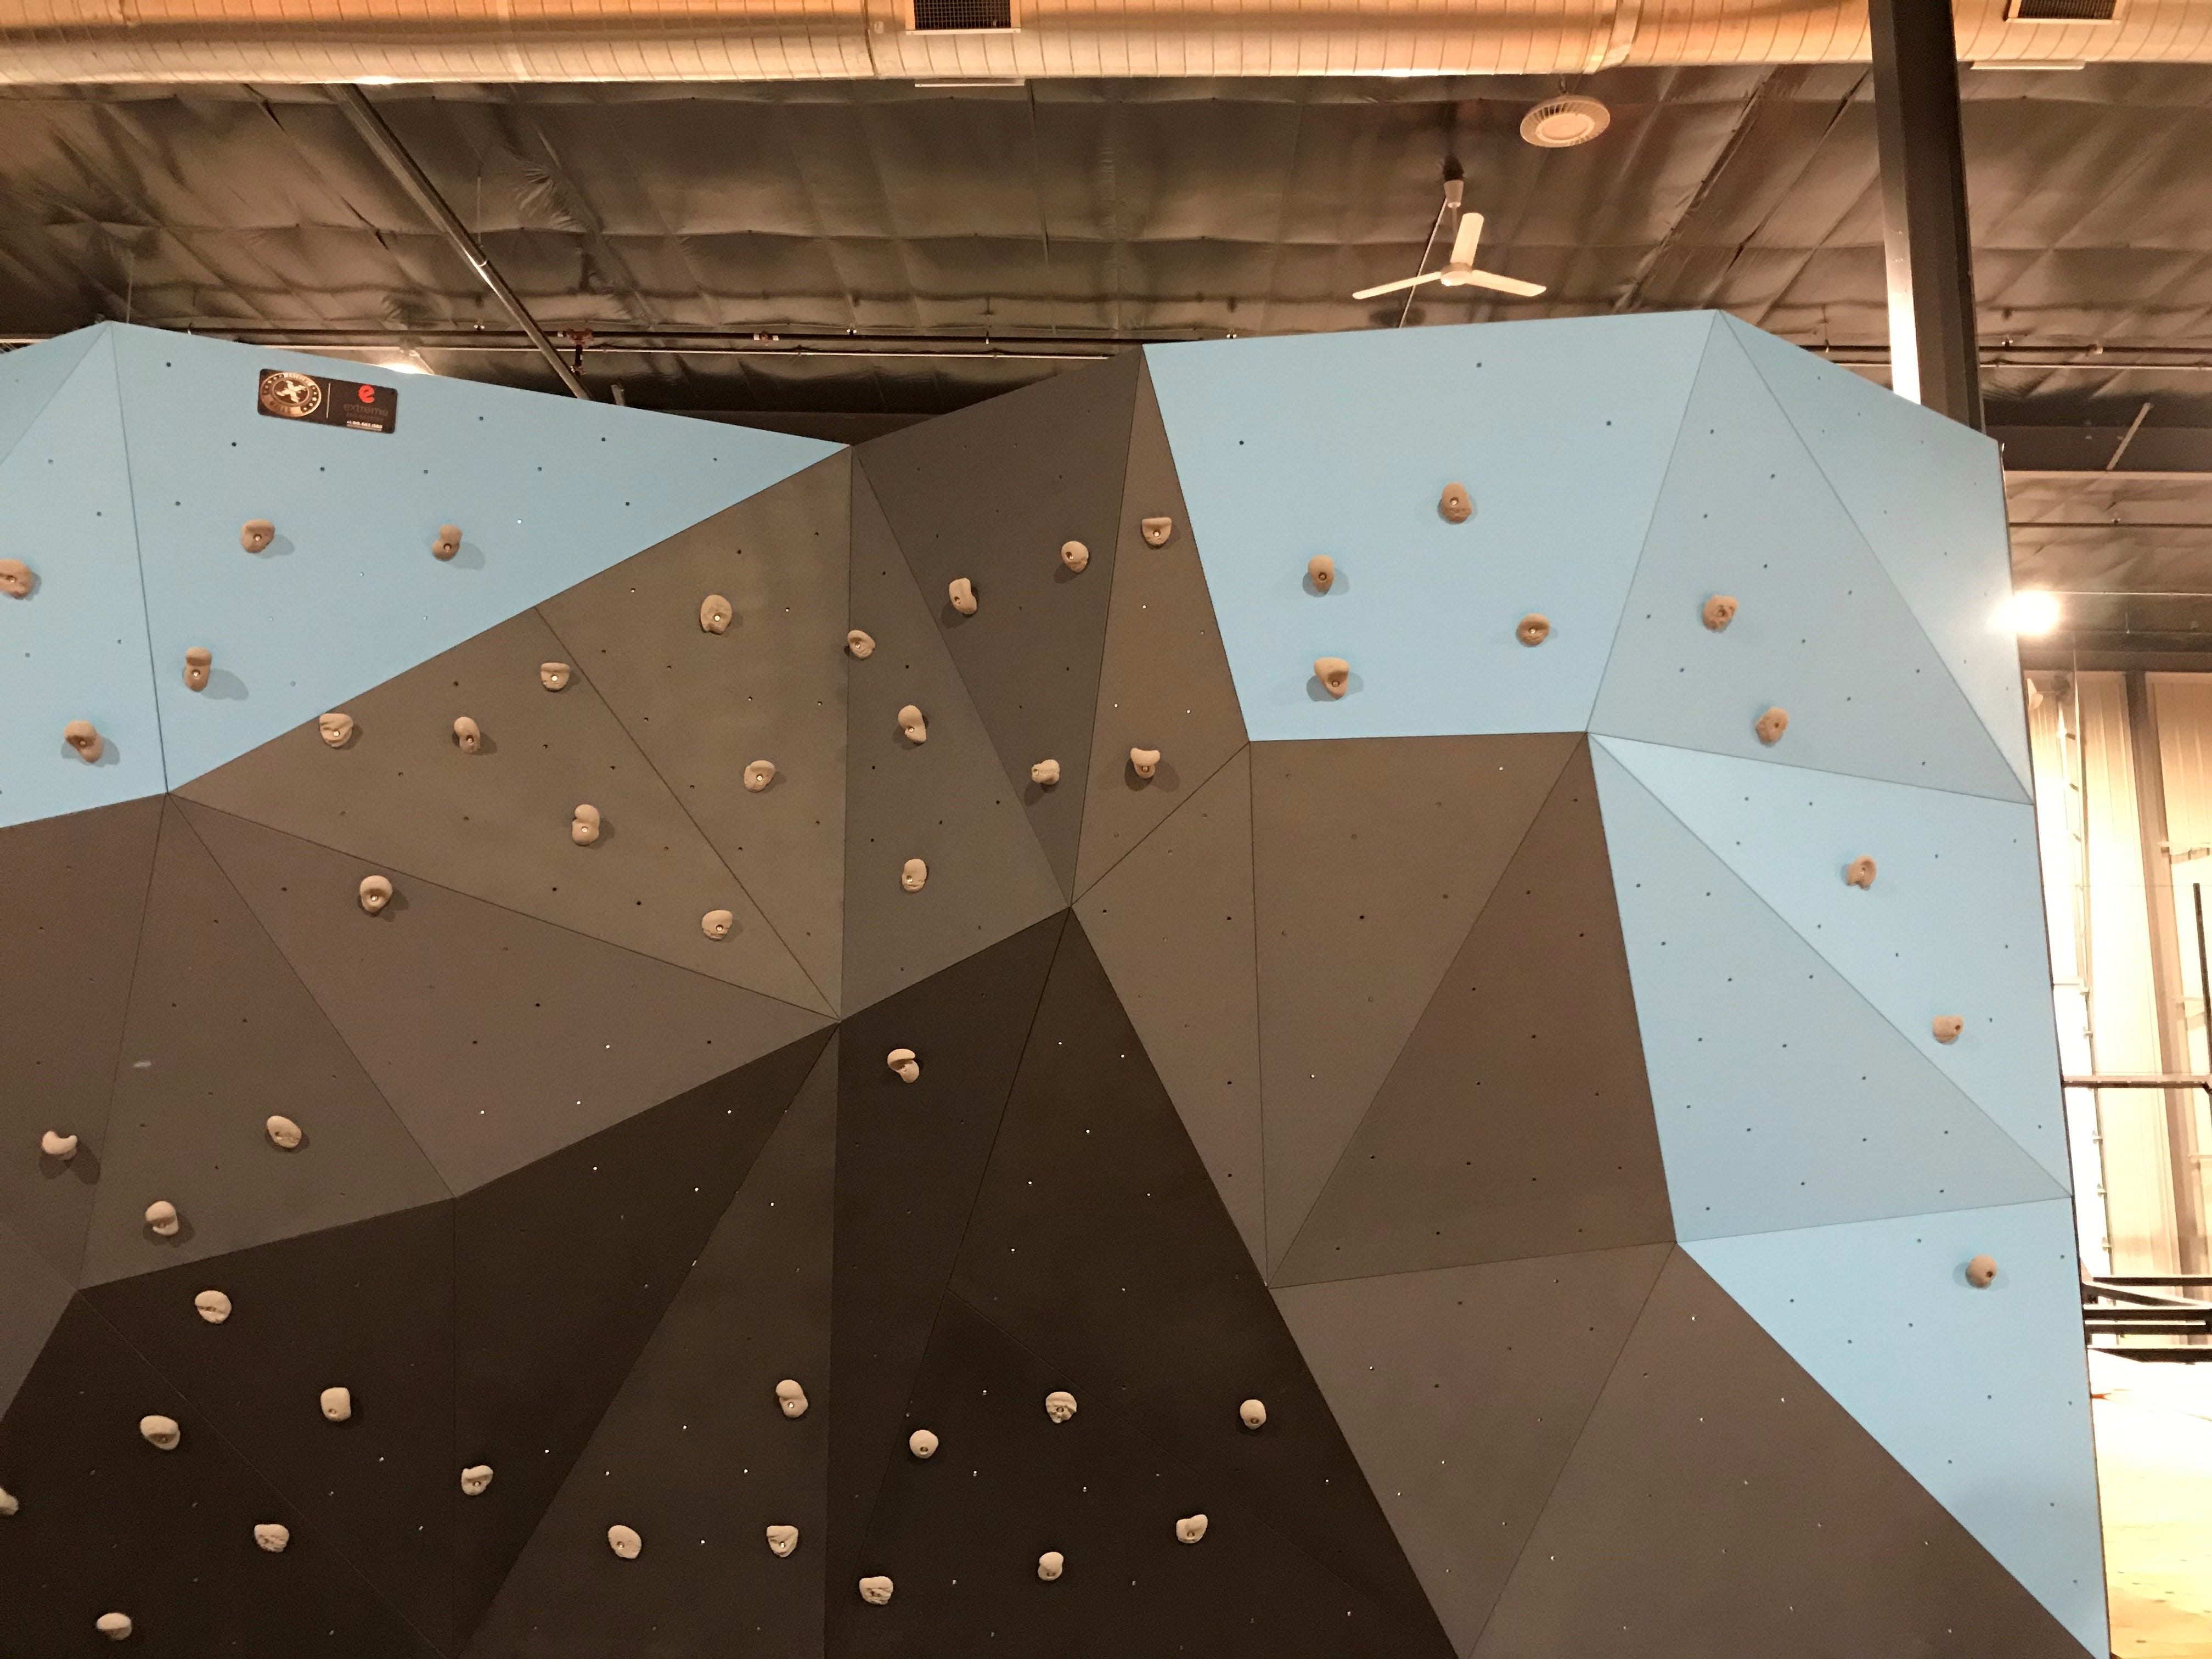 A climbing wall, with protection underneath in case of falls, will also be included in the trampoline park.